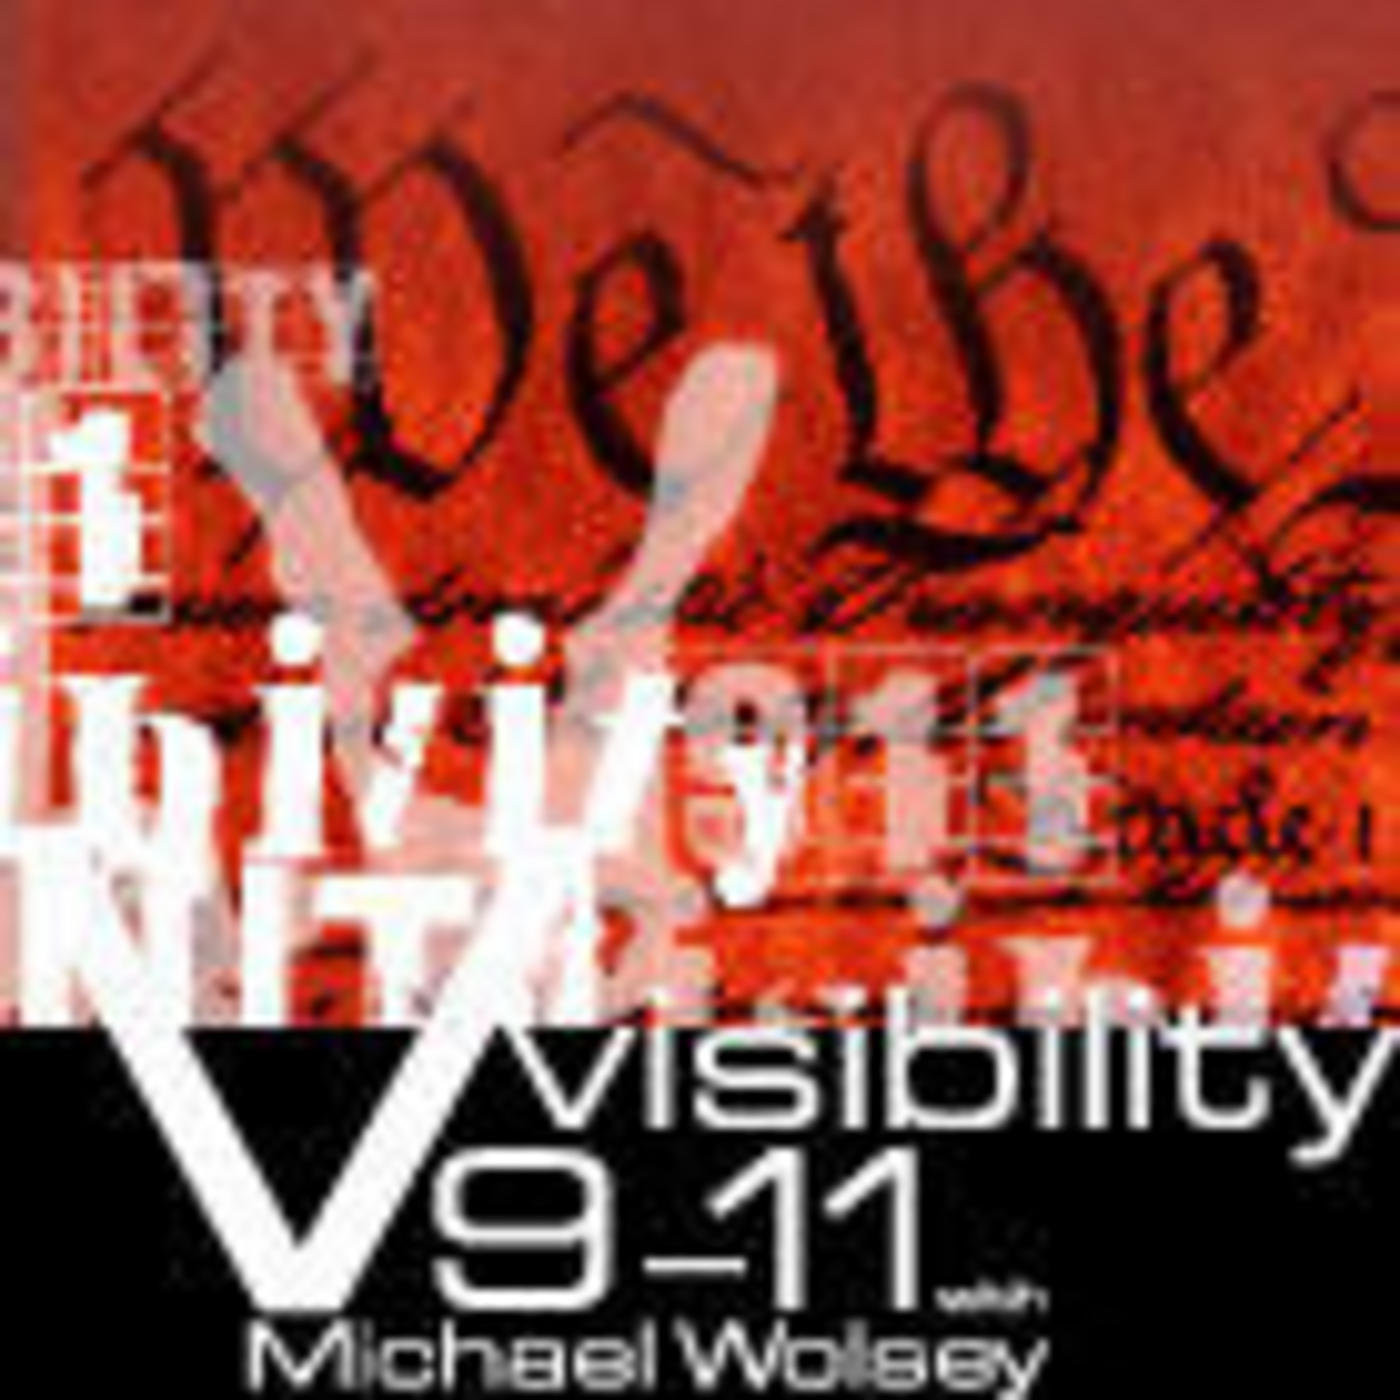 Kevin Ryan Returns to Visibility 9-11